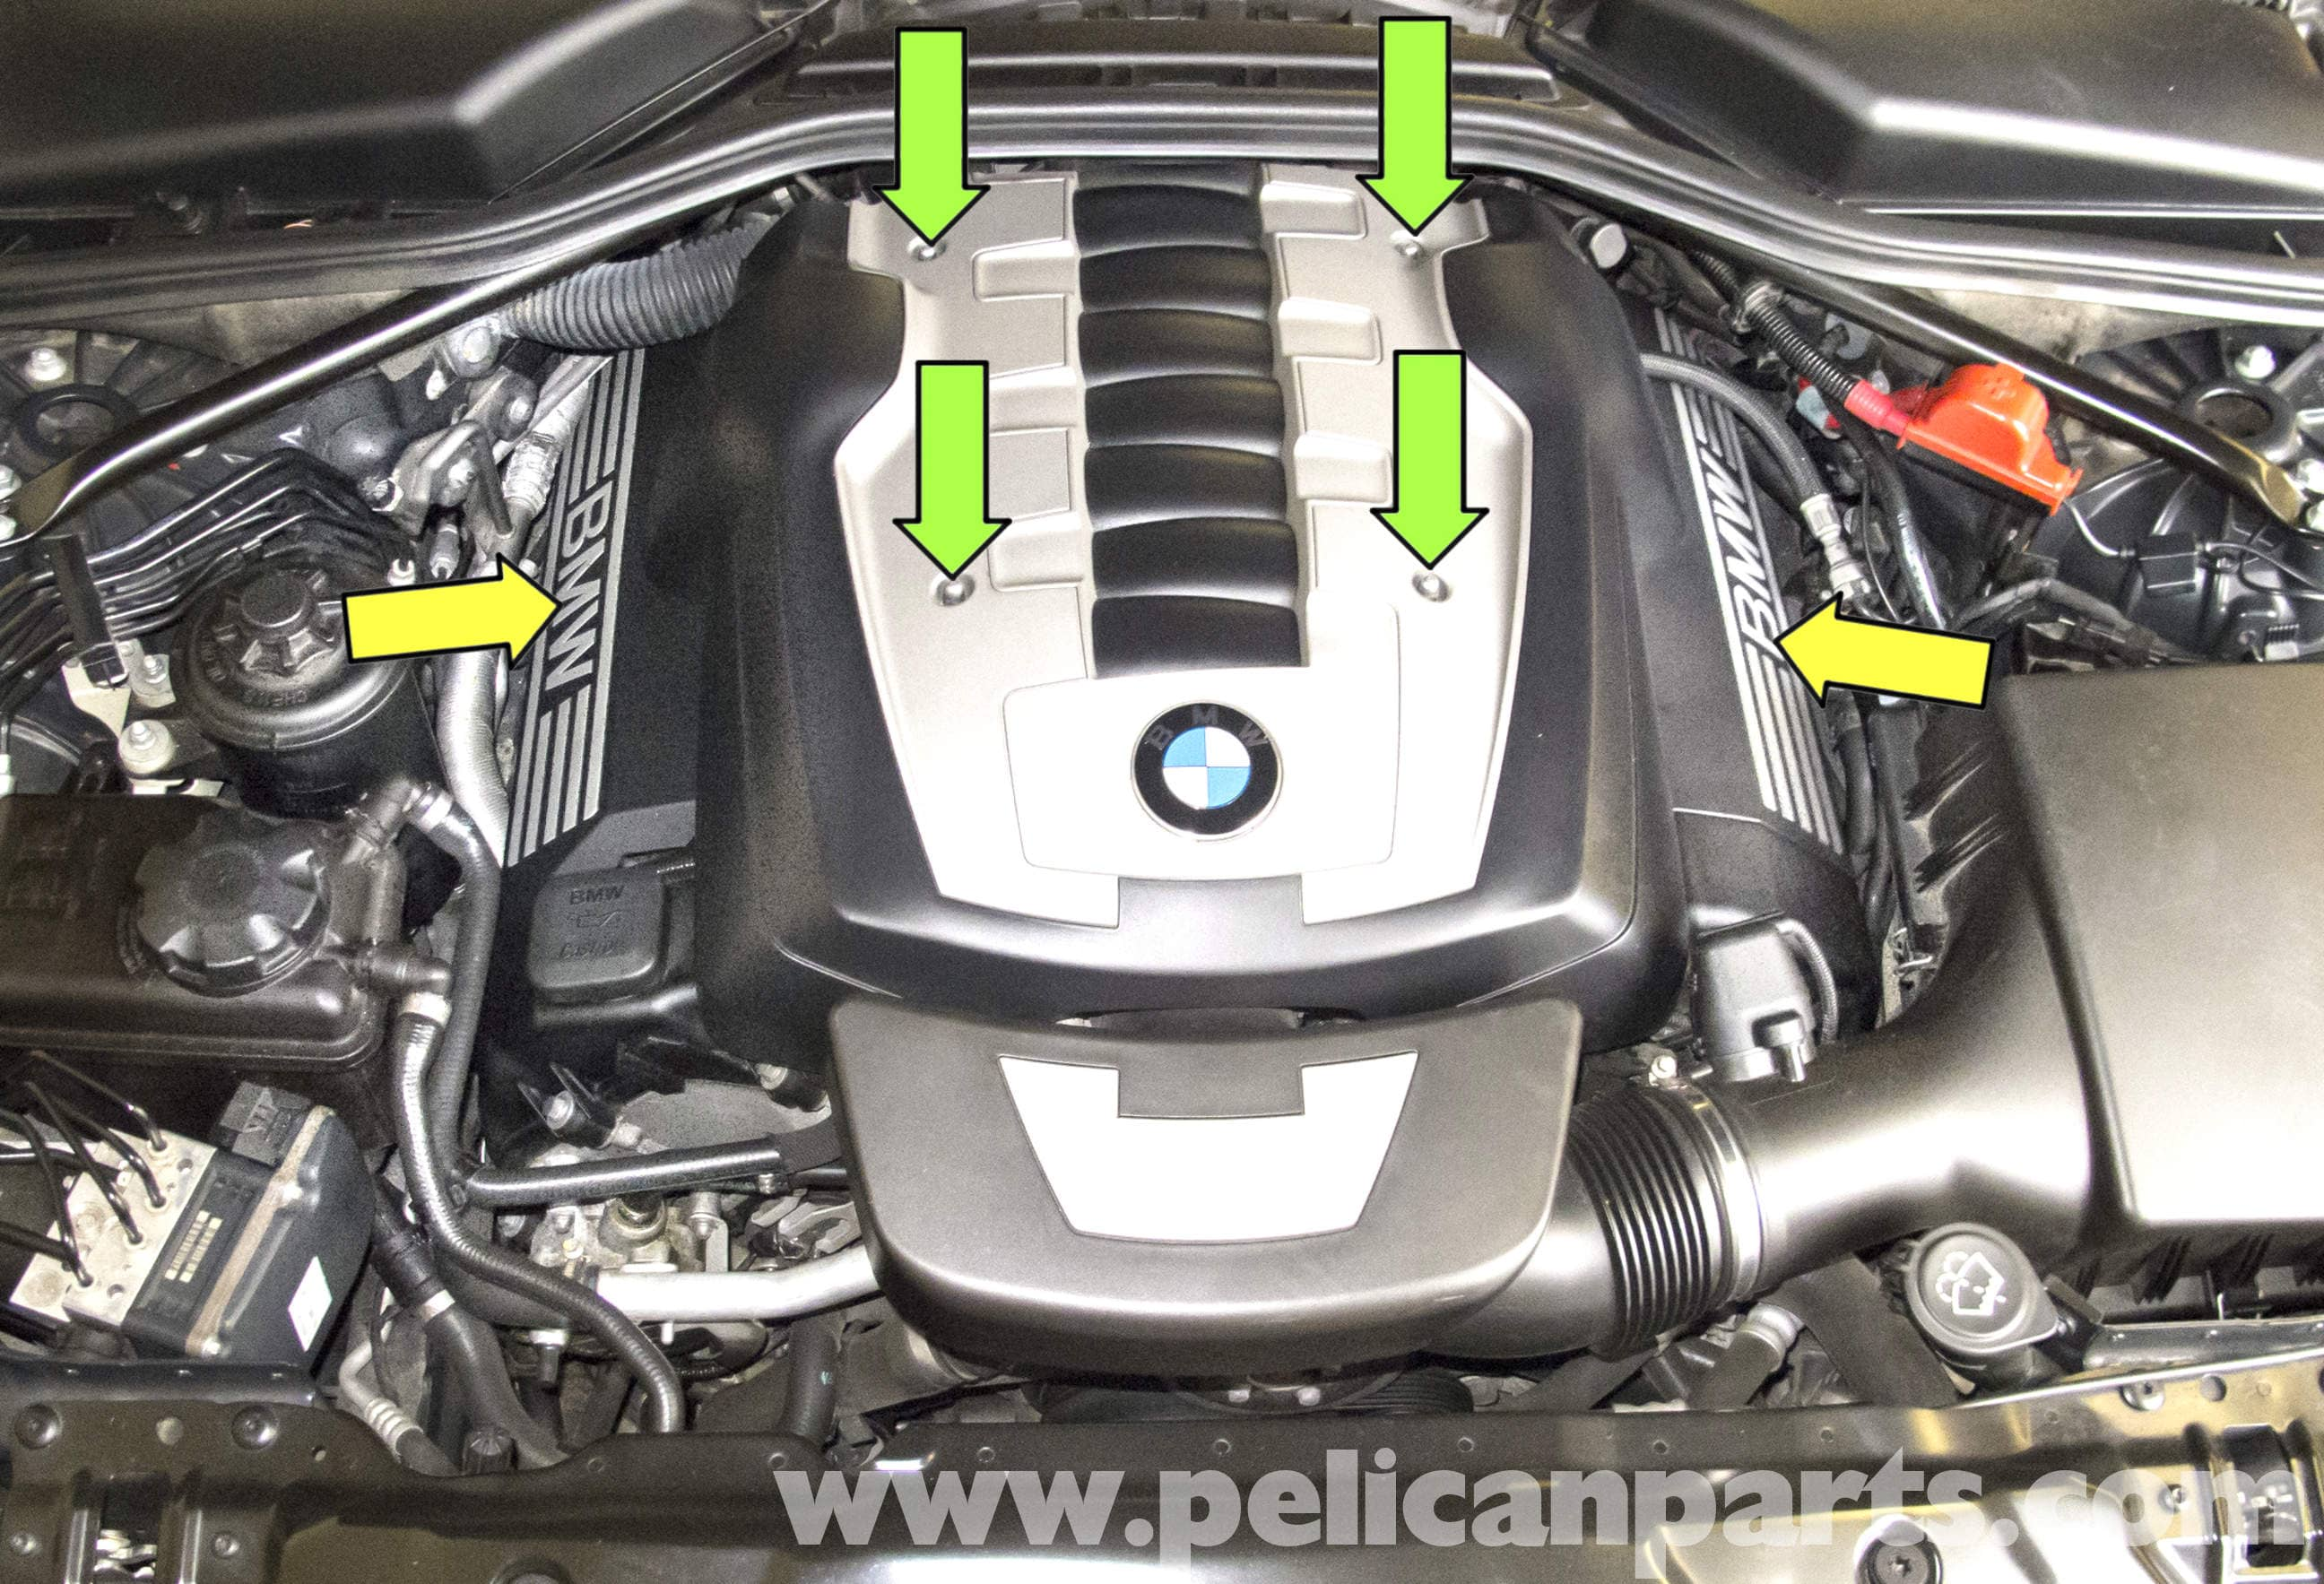 BMW E60 5-Series Engine Covers Removal (2003 - 2010) - Pelican ...